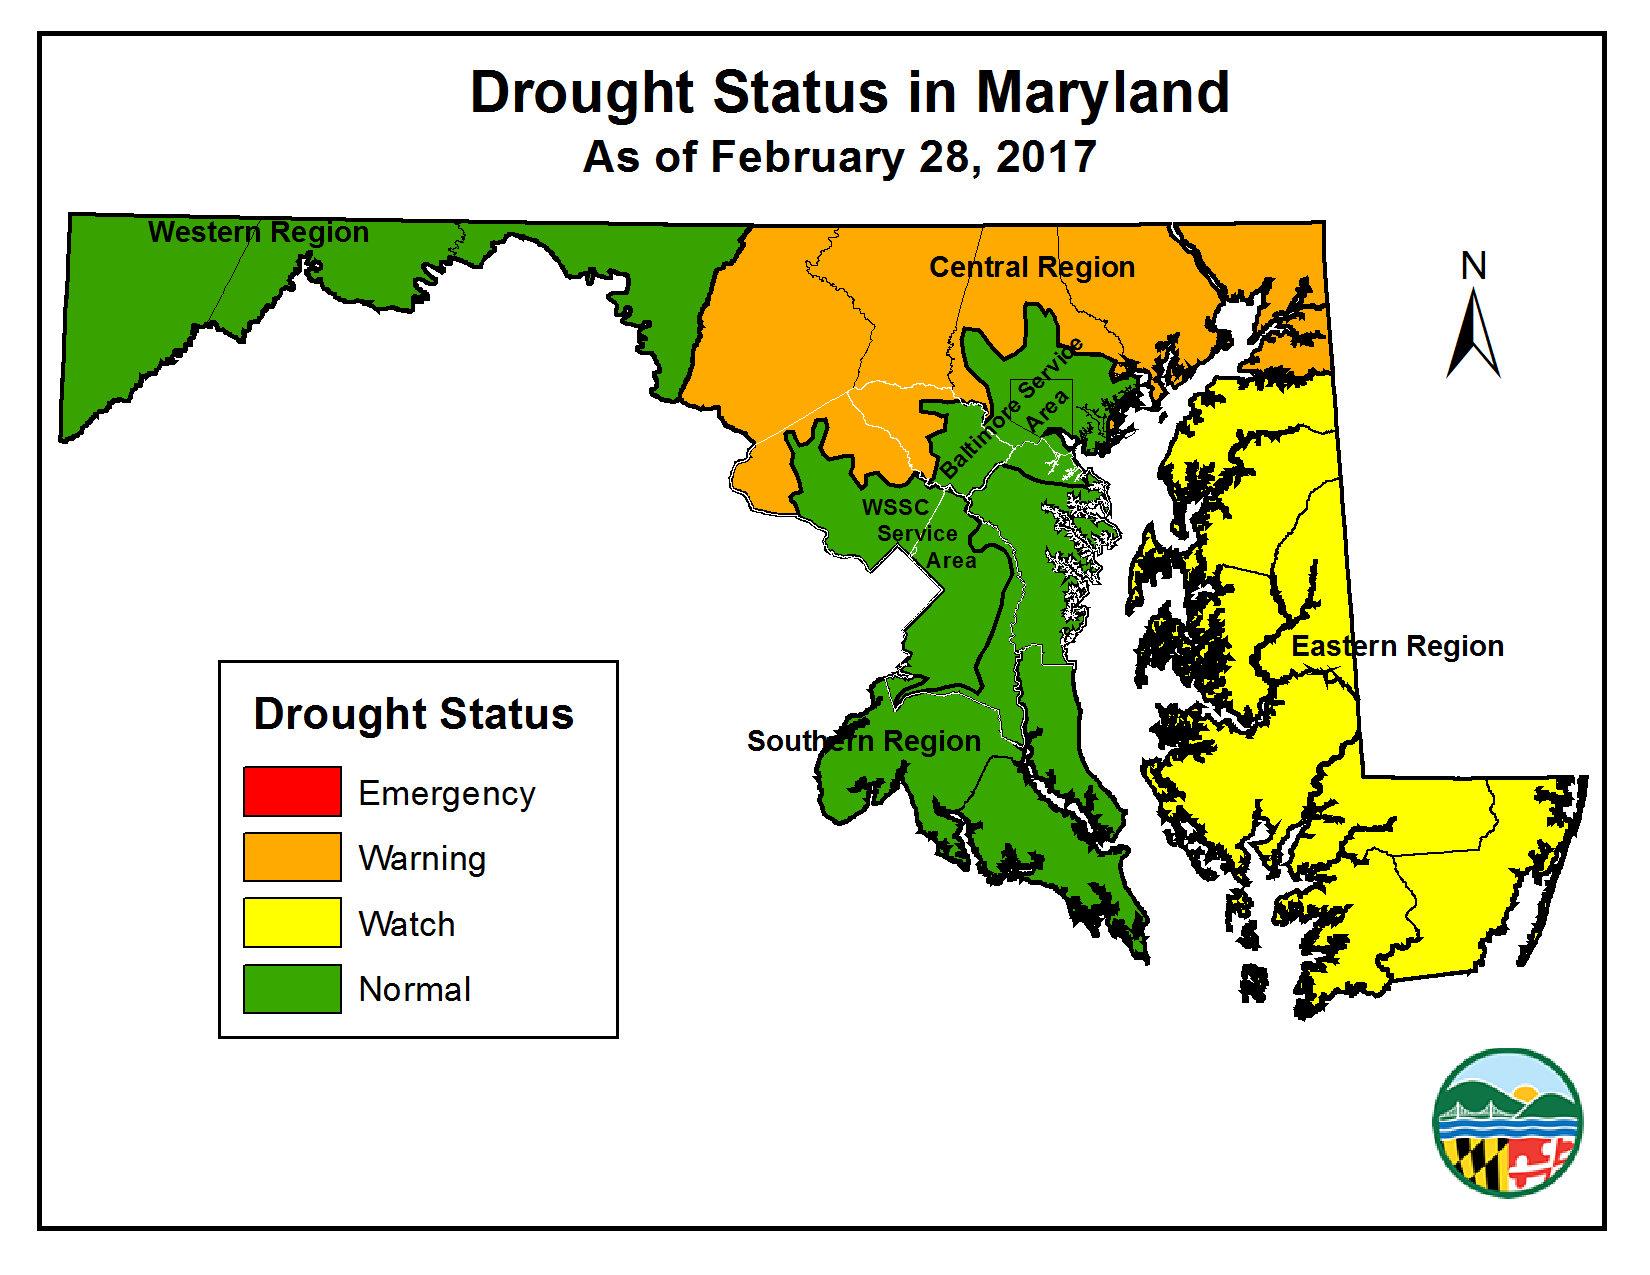 Drought Status as of February 28, 2017